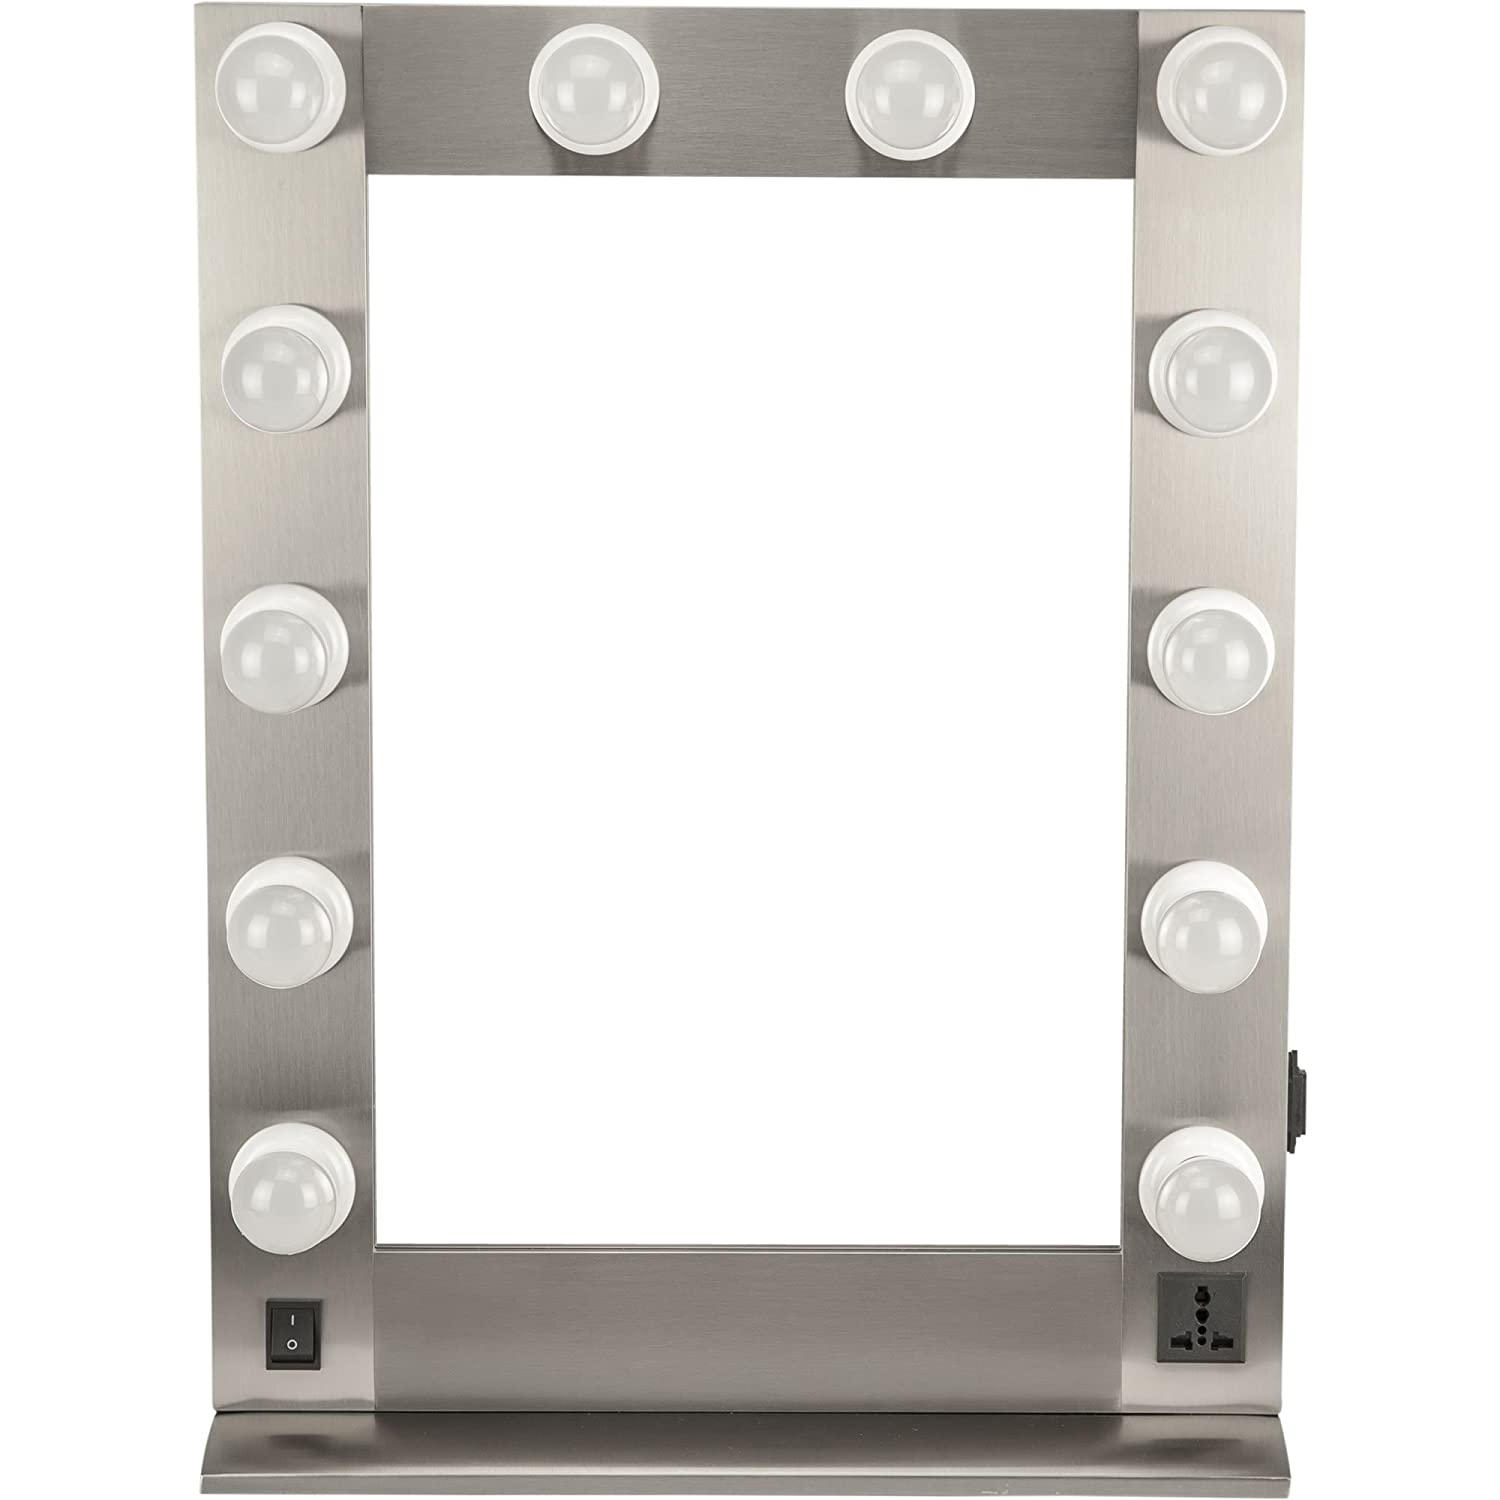 Hiker HKL4205 Hollywood Vanity Mirror with 12 LED Lights, Wall Mountable, Metal Base Stand and Frame in Brush Metal HKL4205RMSL